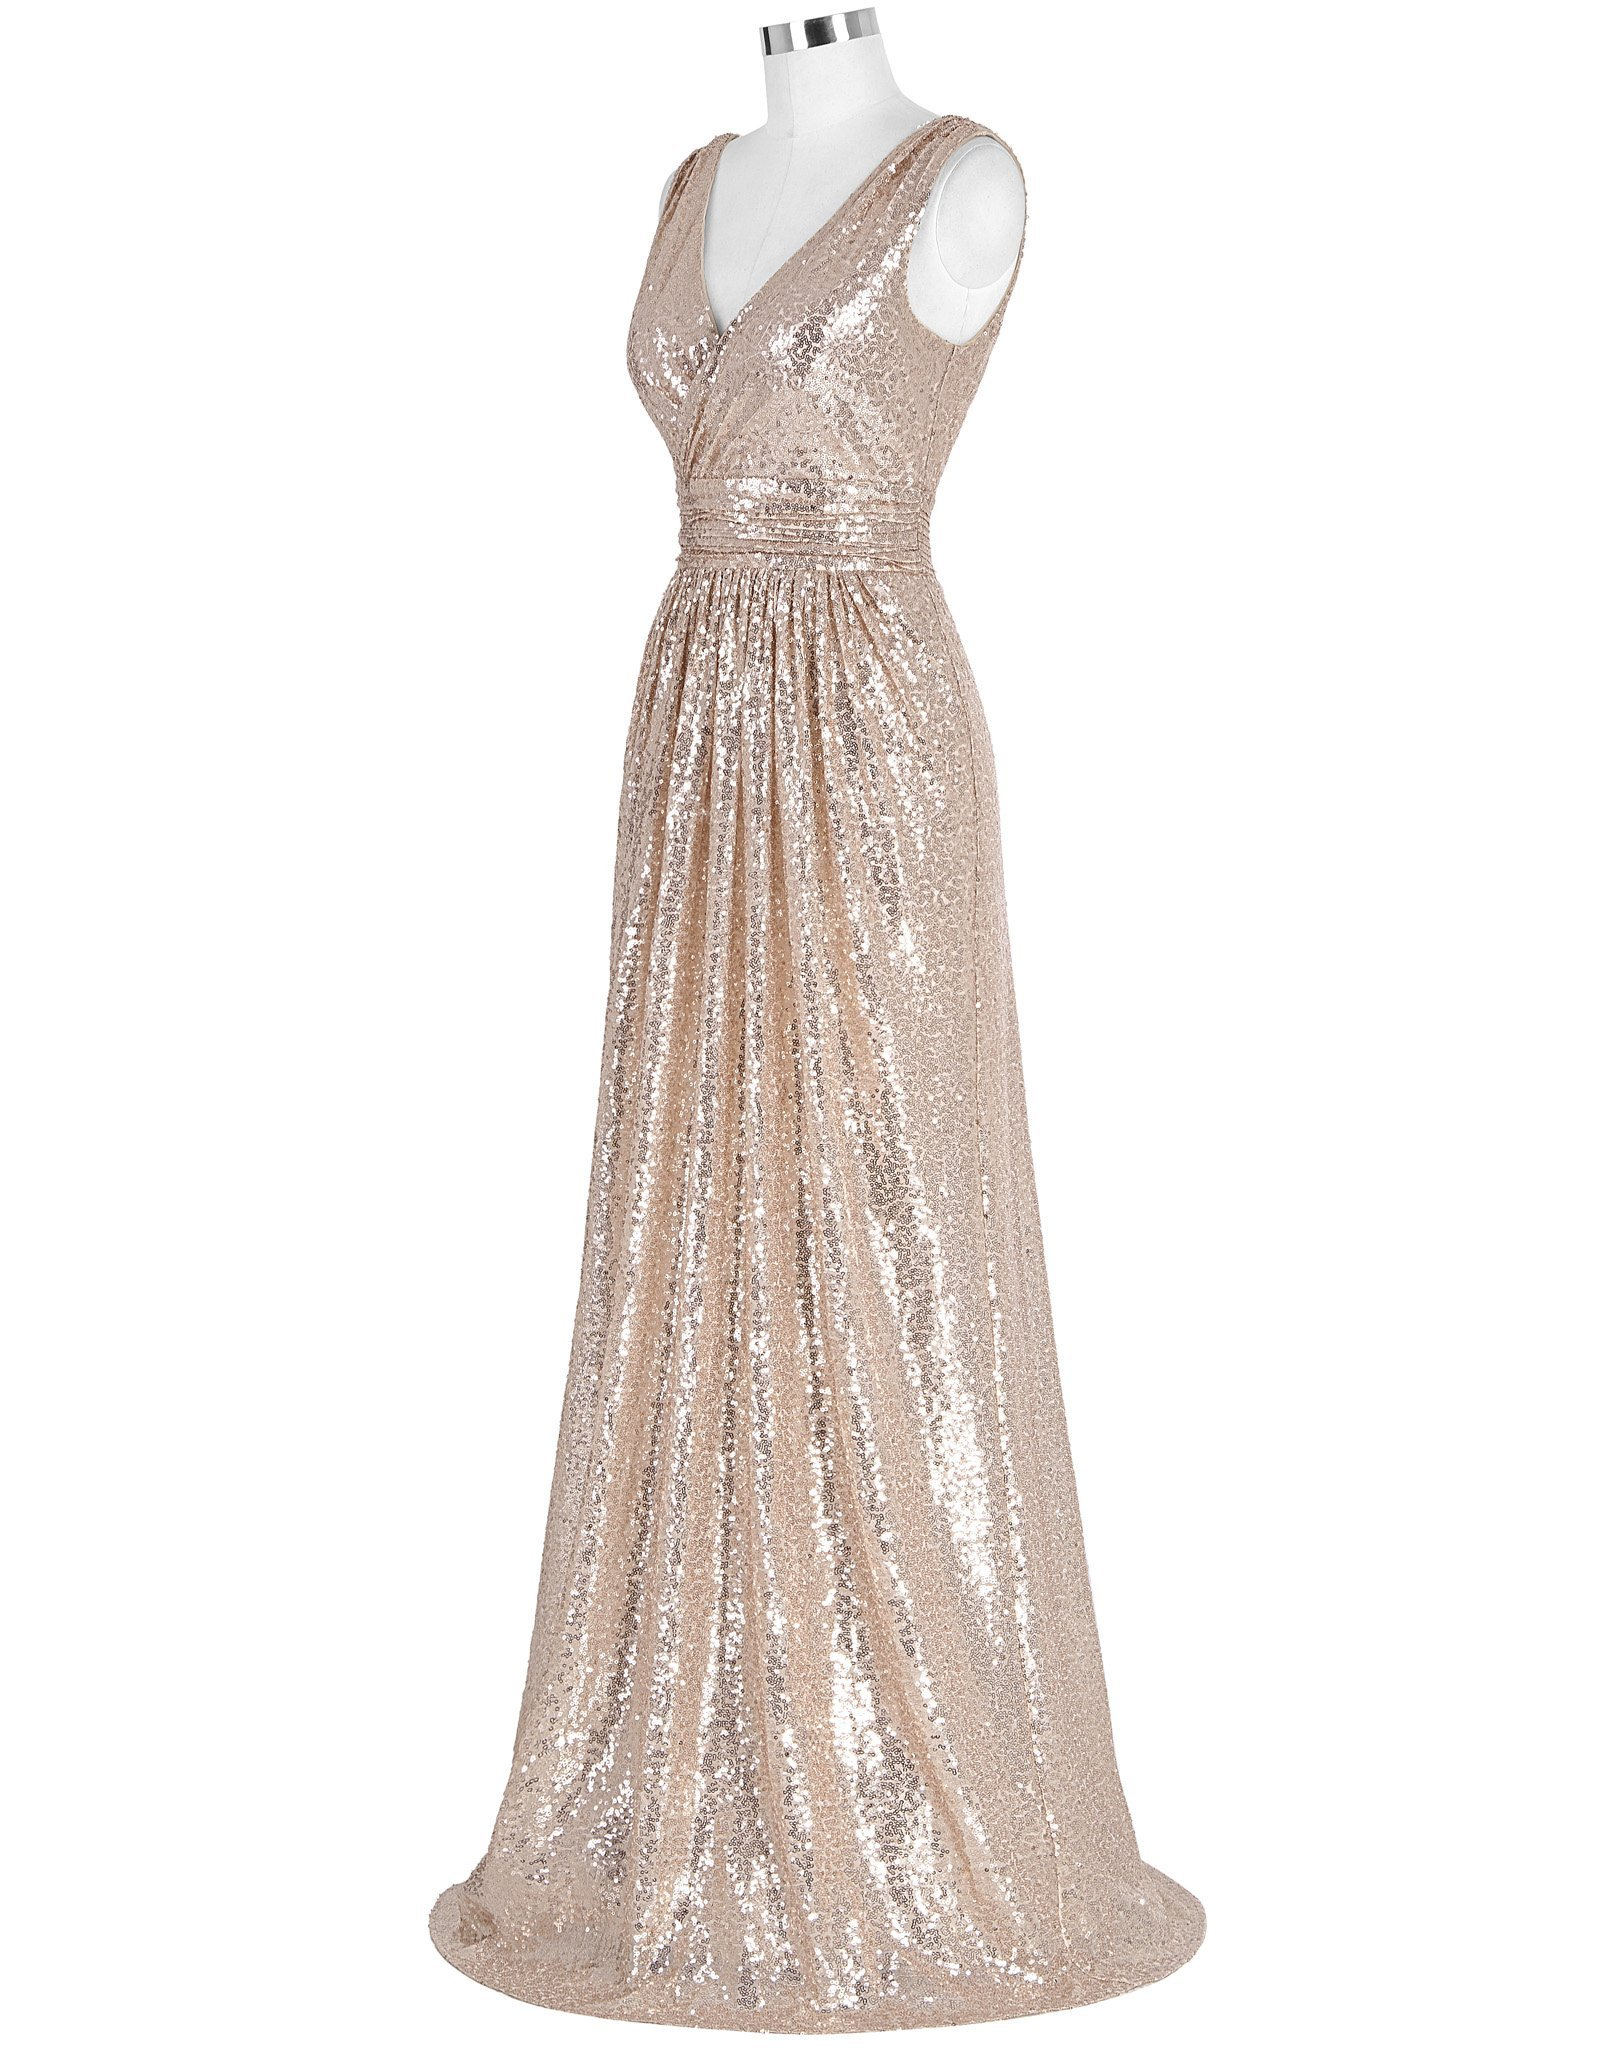 Kate Kasin Sexy Low Cut Long Prom Dress Sequin Bridesmaid Wedding Dress Size 8 KK199